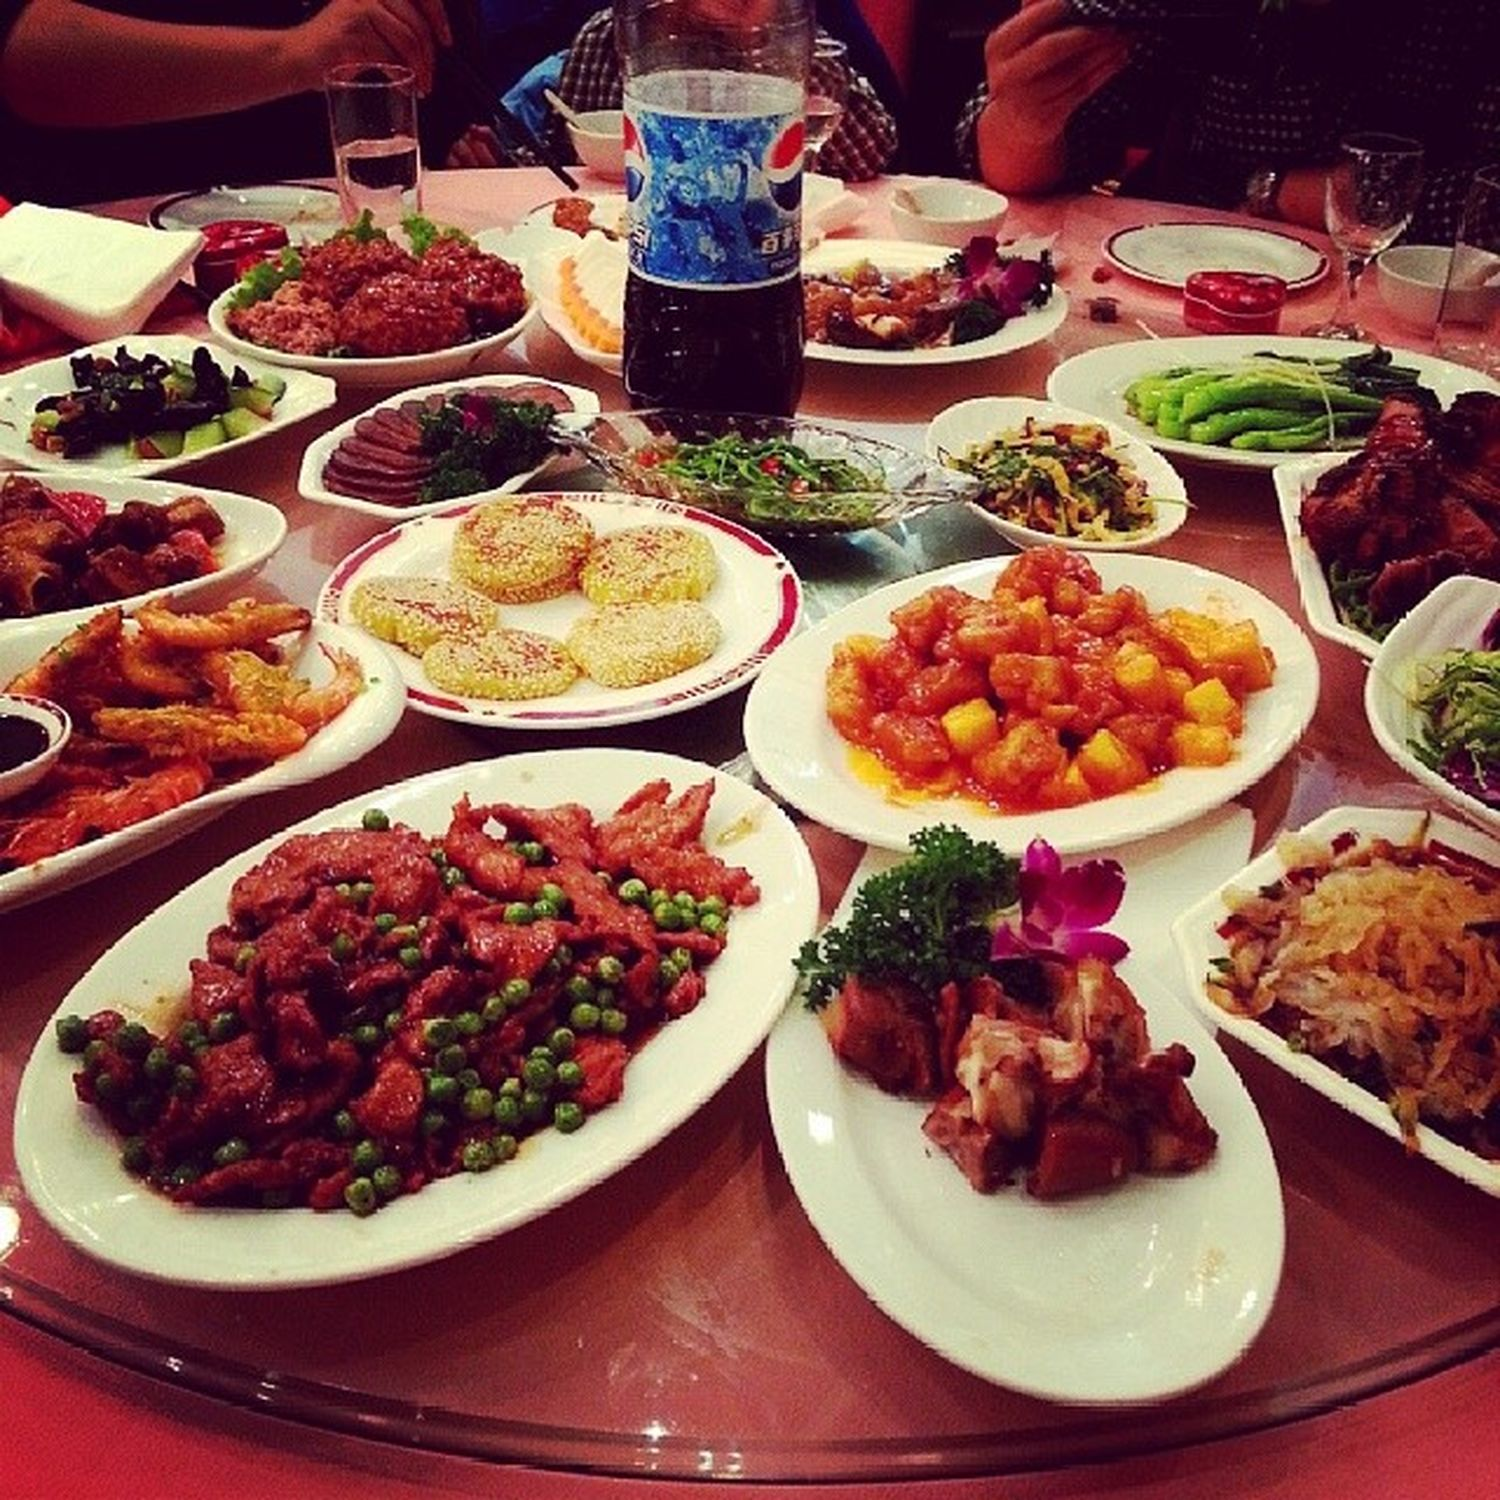 Chinese Food Instamood Instafood instaplace lunch foodstagram Beijing liaoning cuisine instapic China wedding